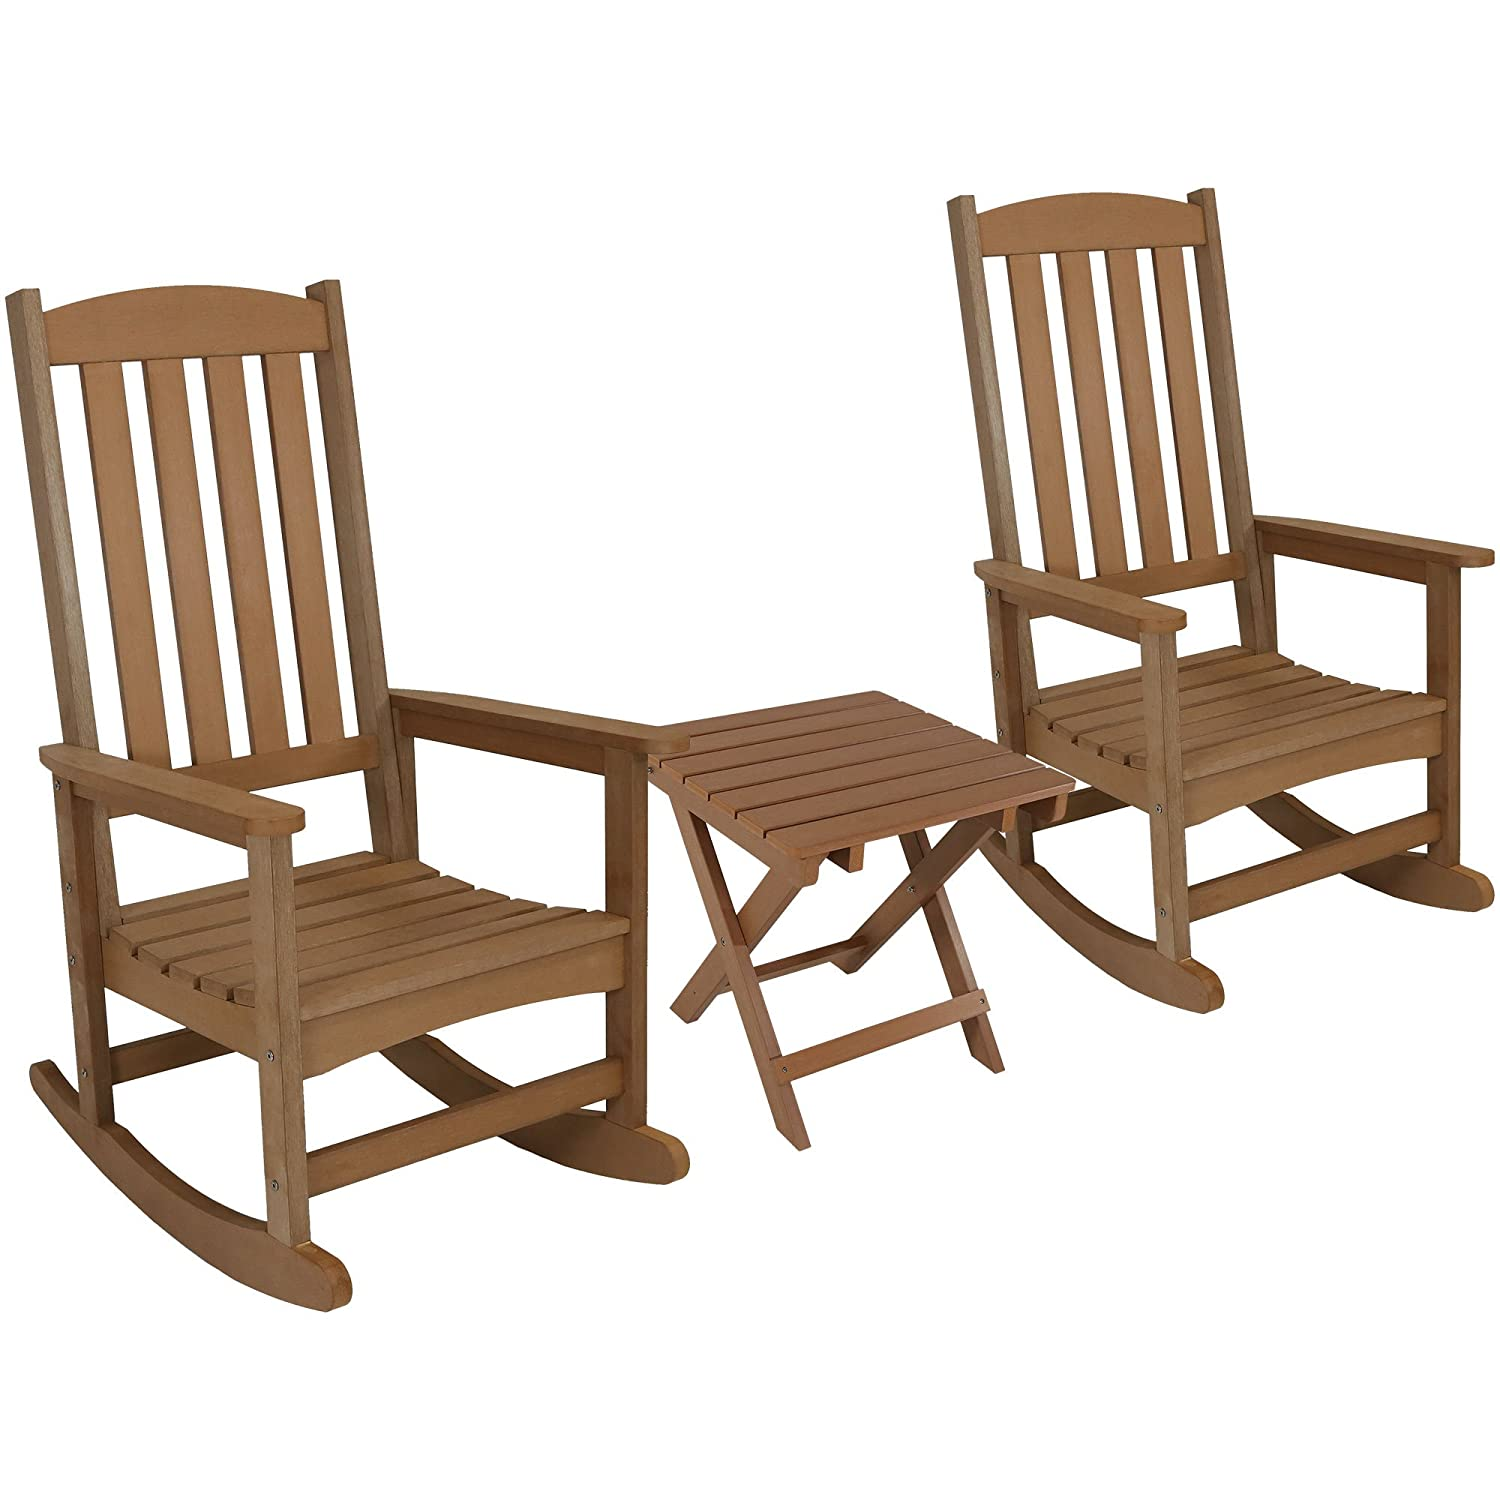 Amazon com sunnydaze all weather rocking chair set of 2 with folding side table faux wood design brown garden outdoor